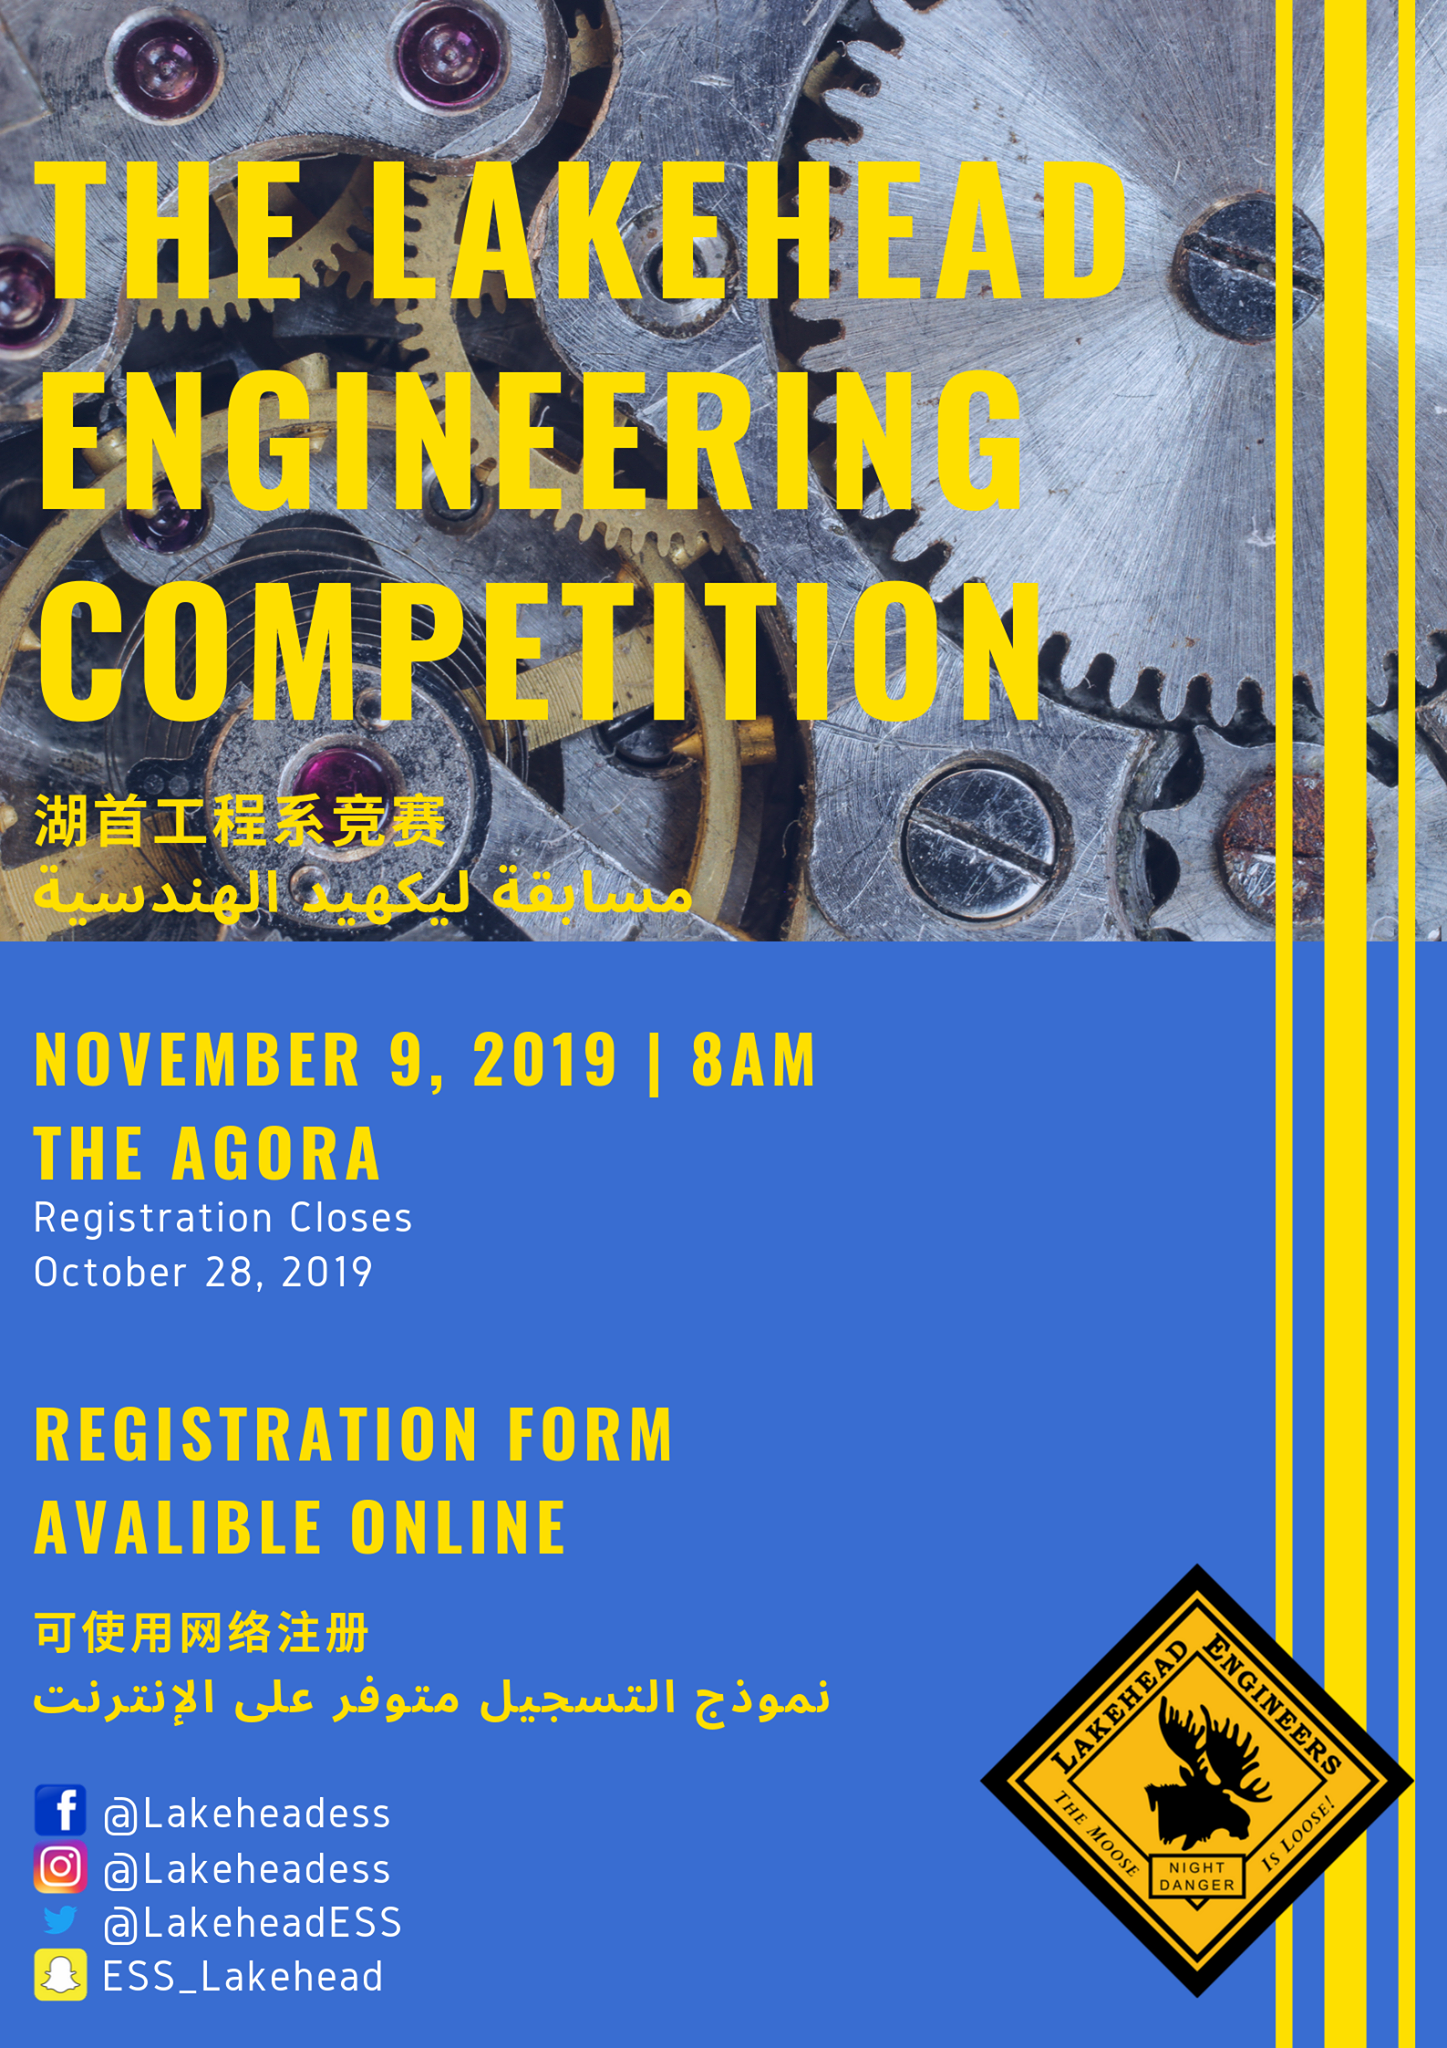 Lakehead Engineering Competition 2019, sign up through the application link below